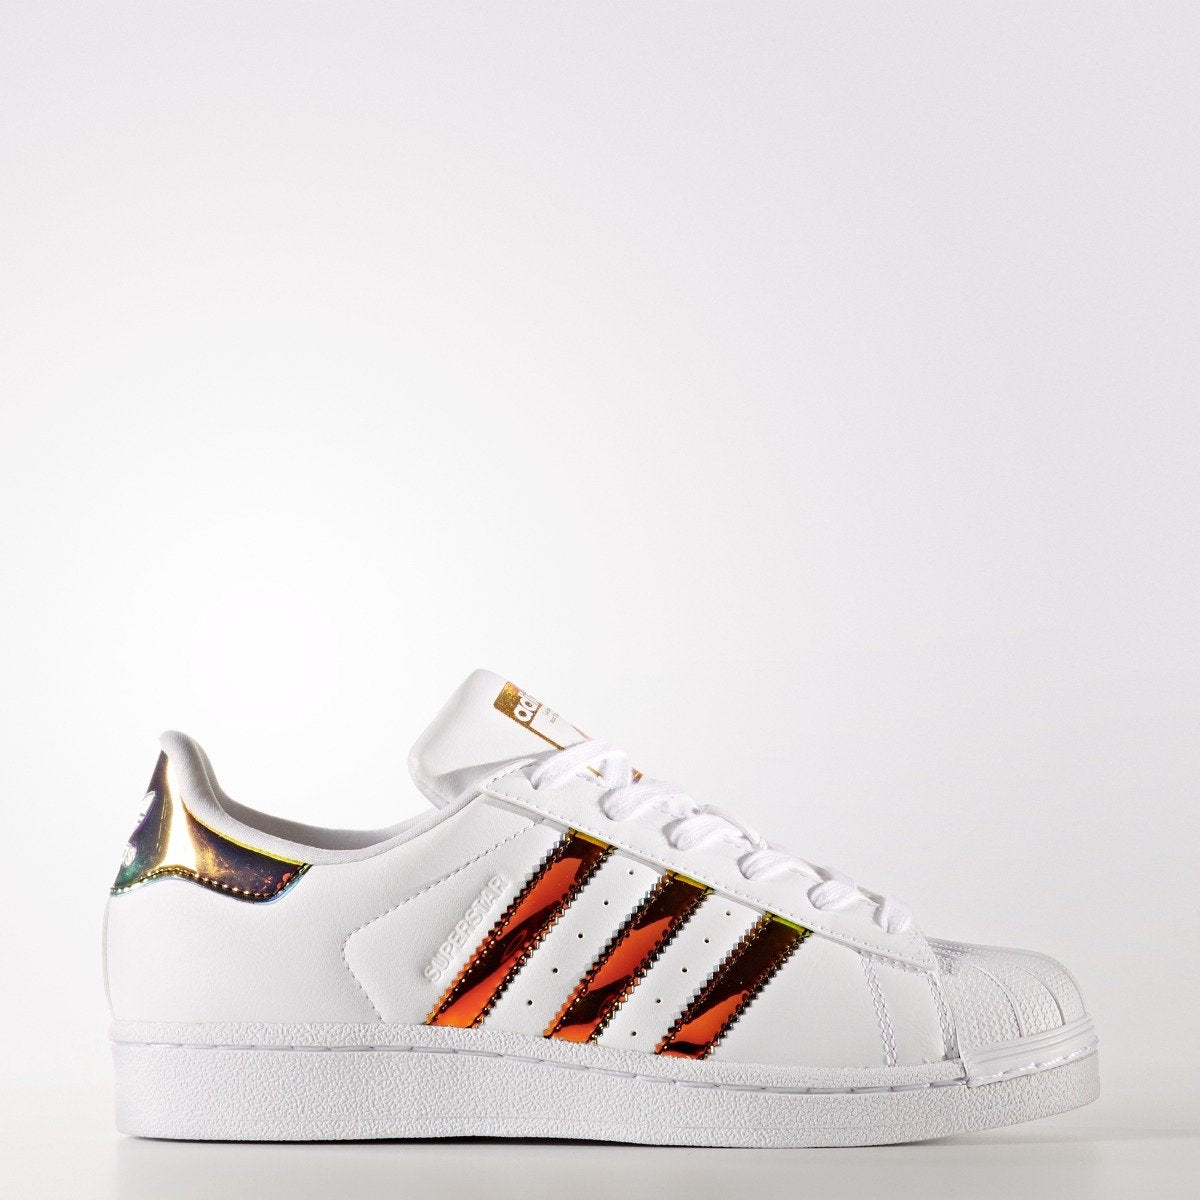 adidas Superstar Shoes Gold Iridescent CP9837 | Chicago City